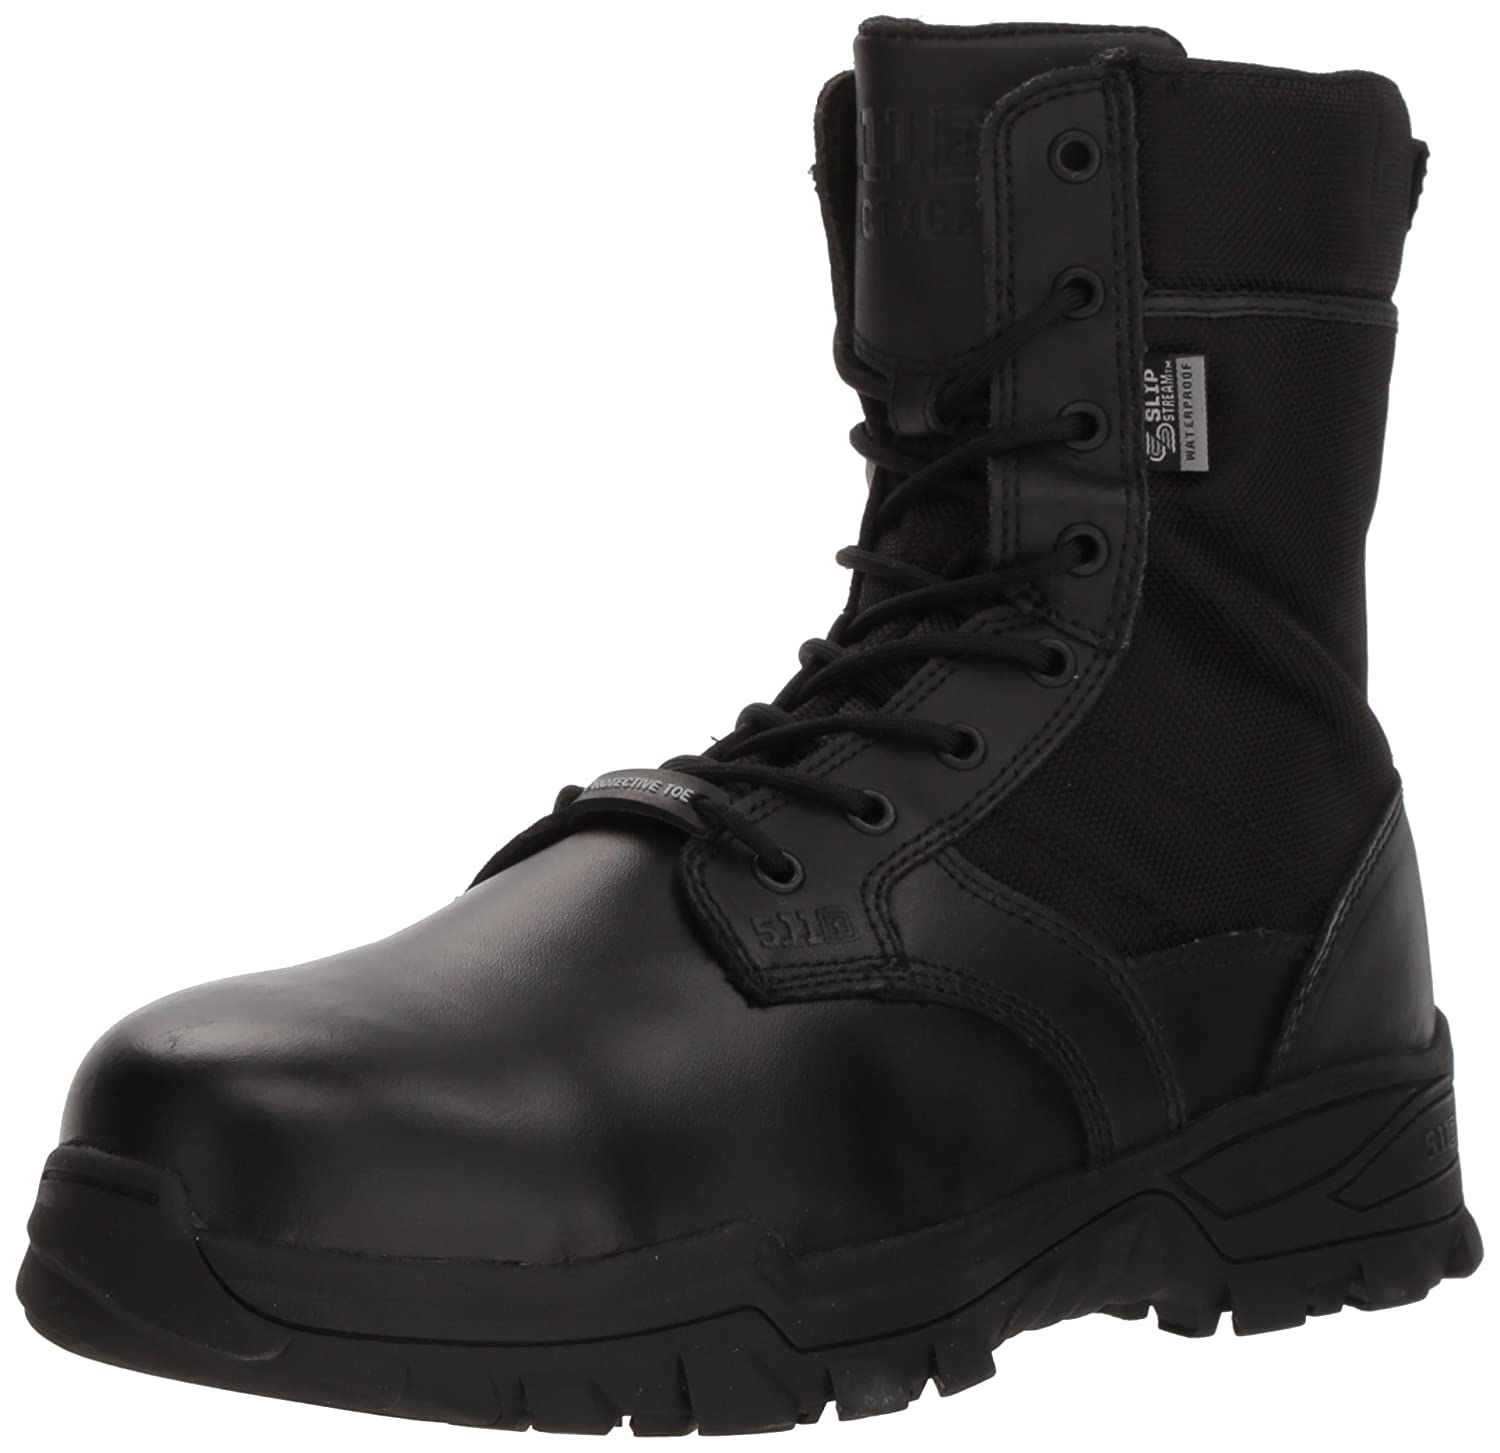 5.11 Tactical Speed 3.0 Shield Stiefel